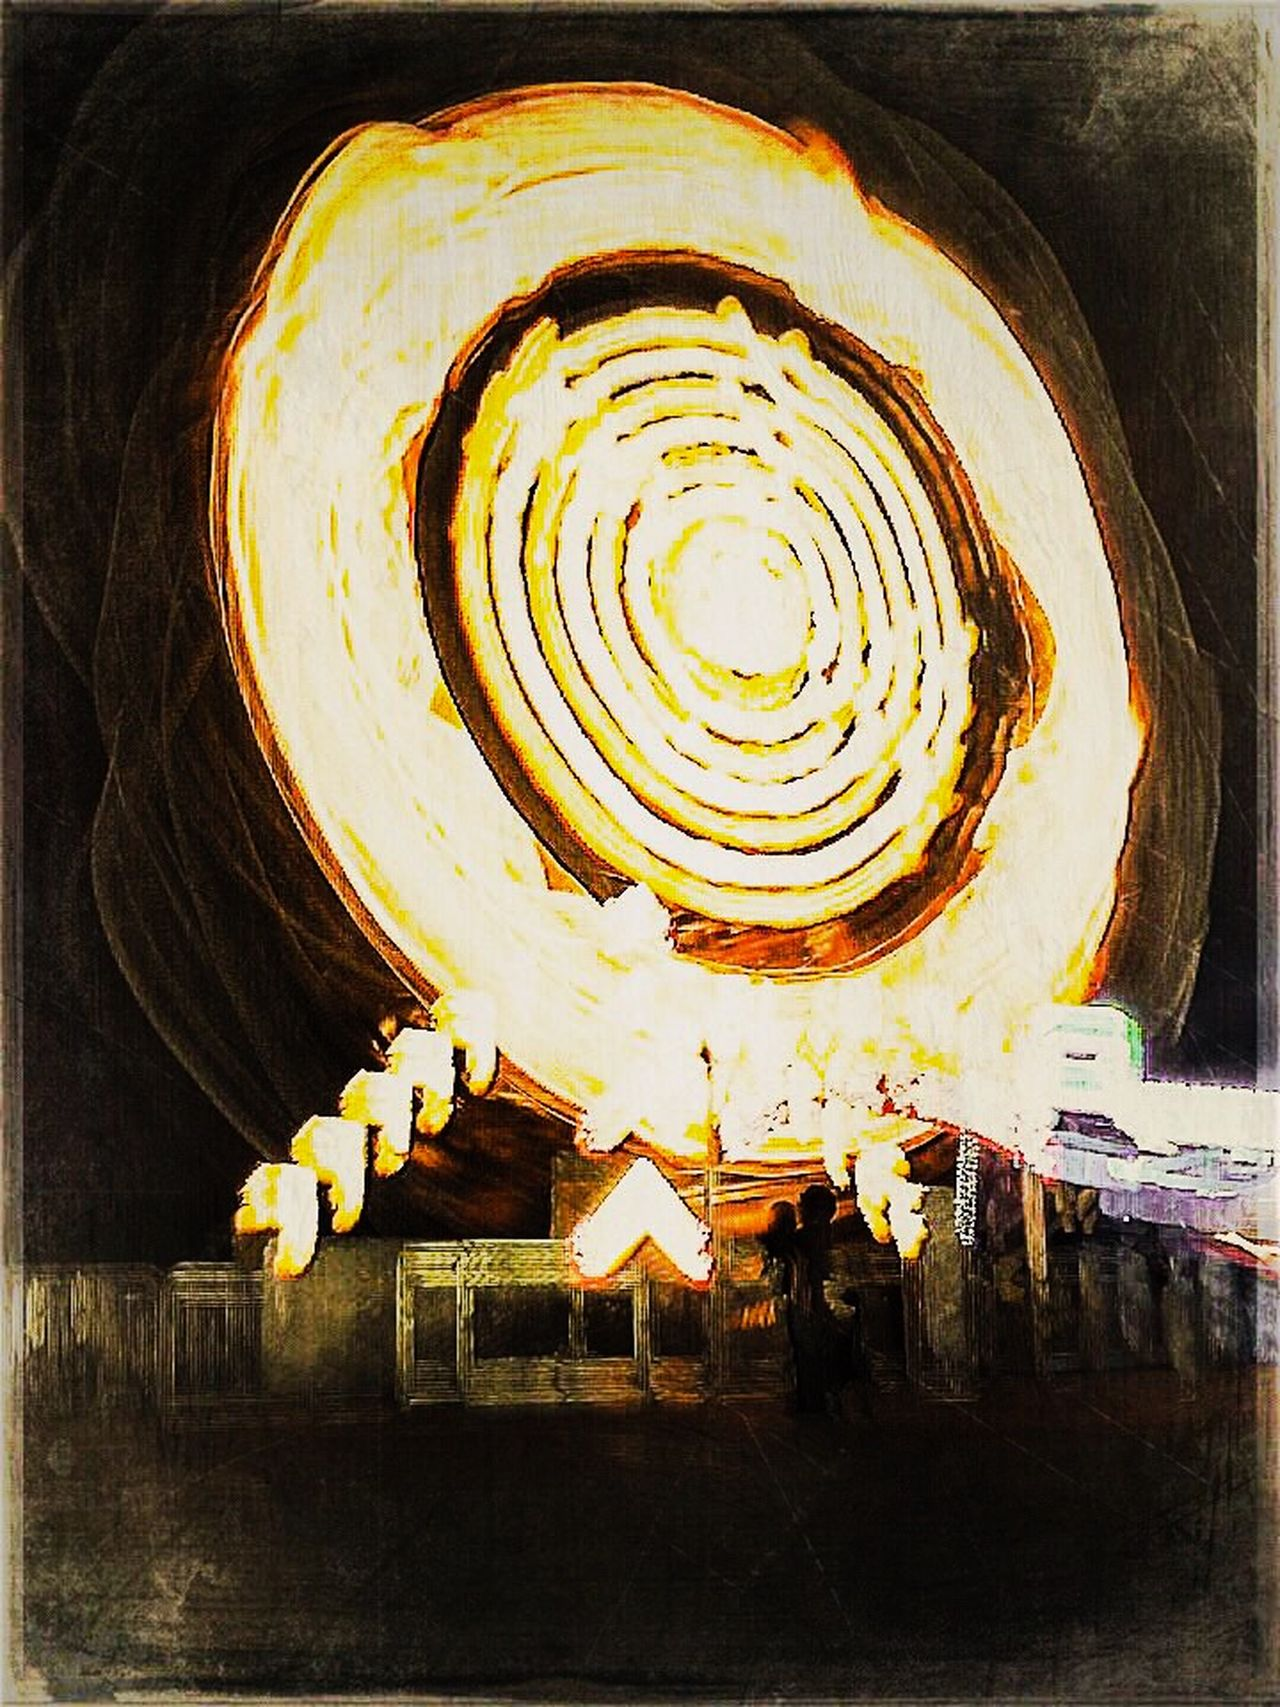 Misquamicut Fall Fest...Working with some Long Exposure 🙏 www.eSantosStudios.com IPhoneography IPhone Iphoneonly Iphonesia Iphonephotography Iphone6 Long Exposure Longexposure EyeEm Best Shots - Long Exposure IPhoneArtism